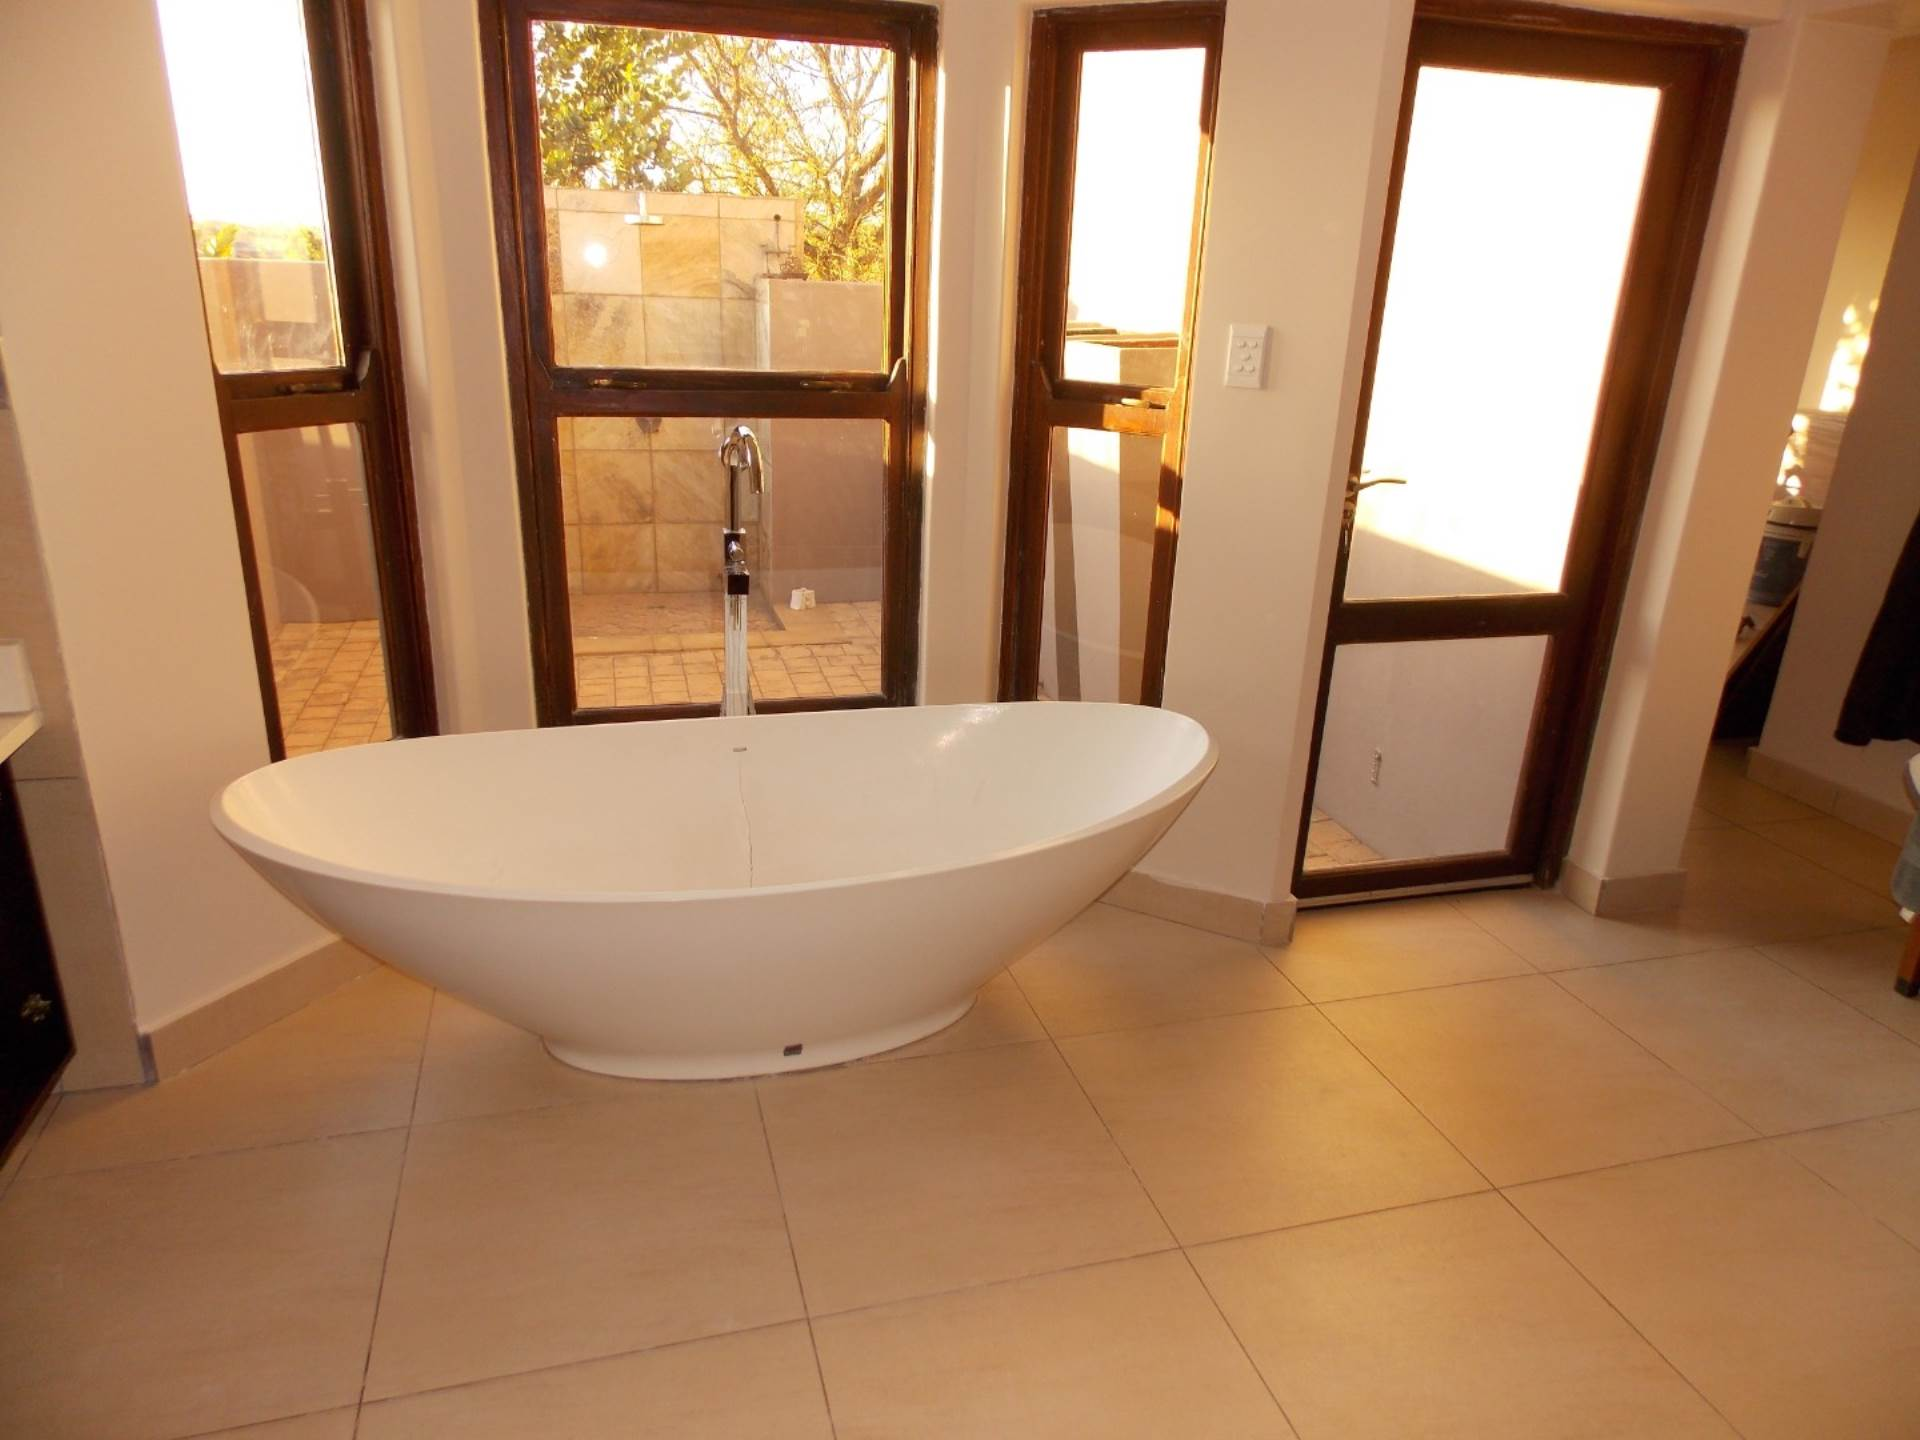 Rietvlei View Country Estate property for sale. Ref No: 13675032. Picture no 17